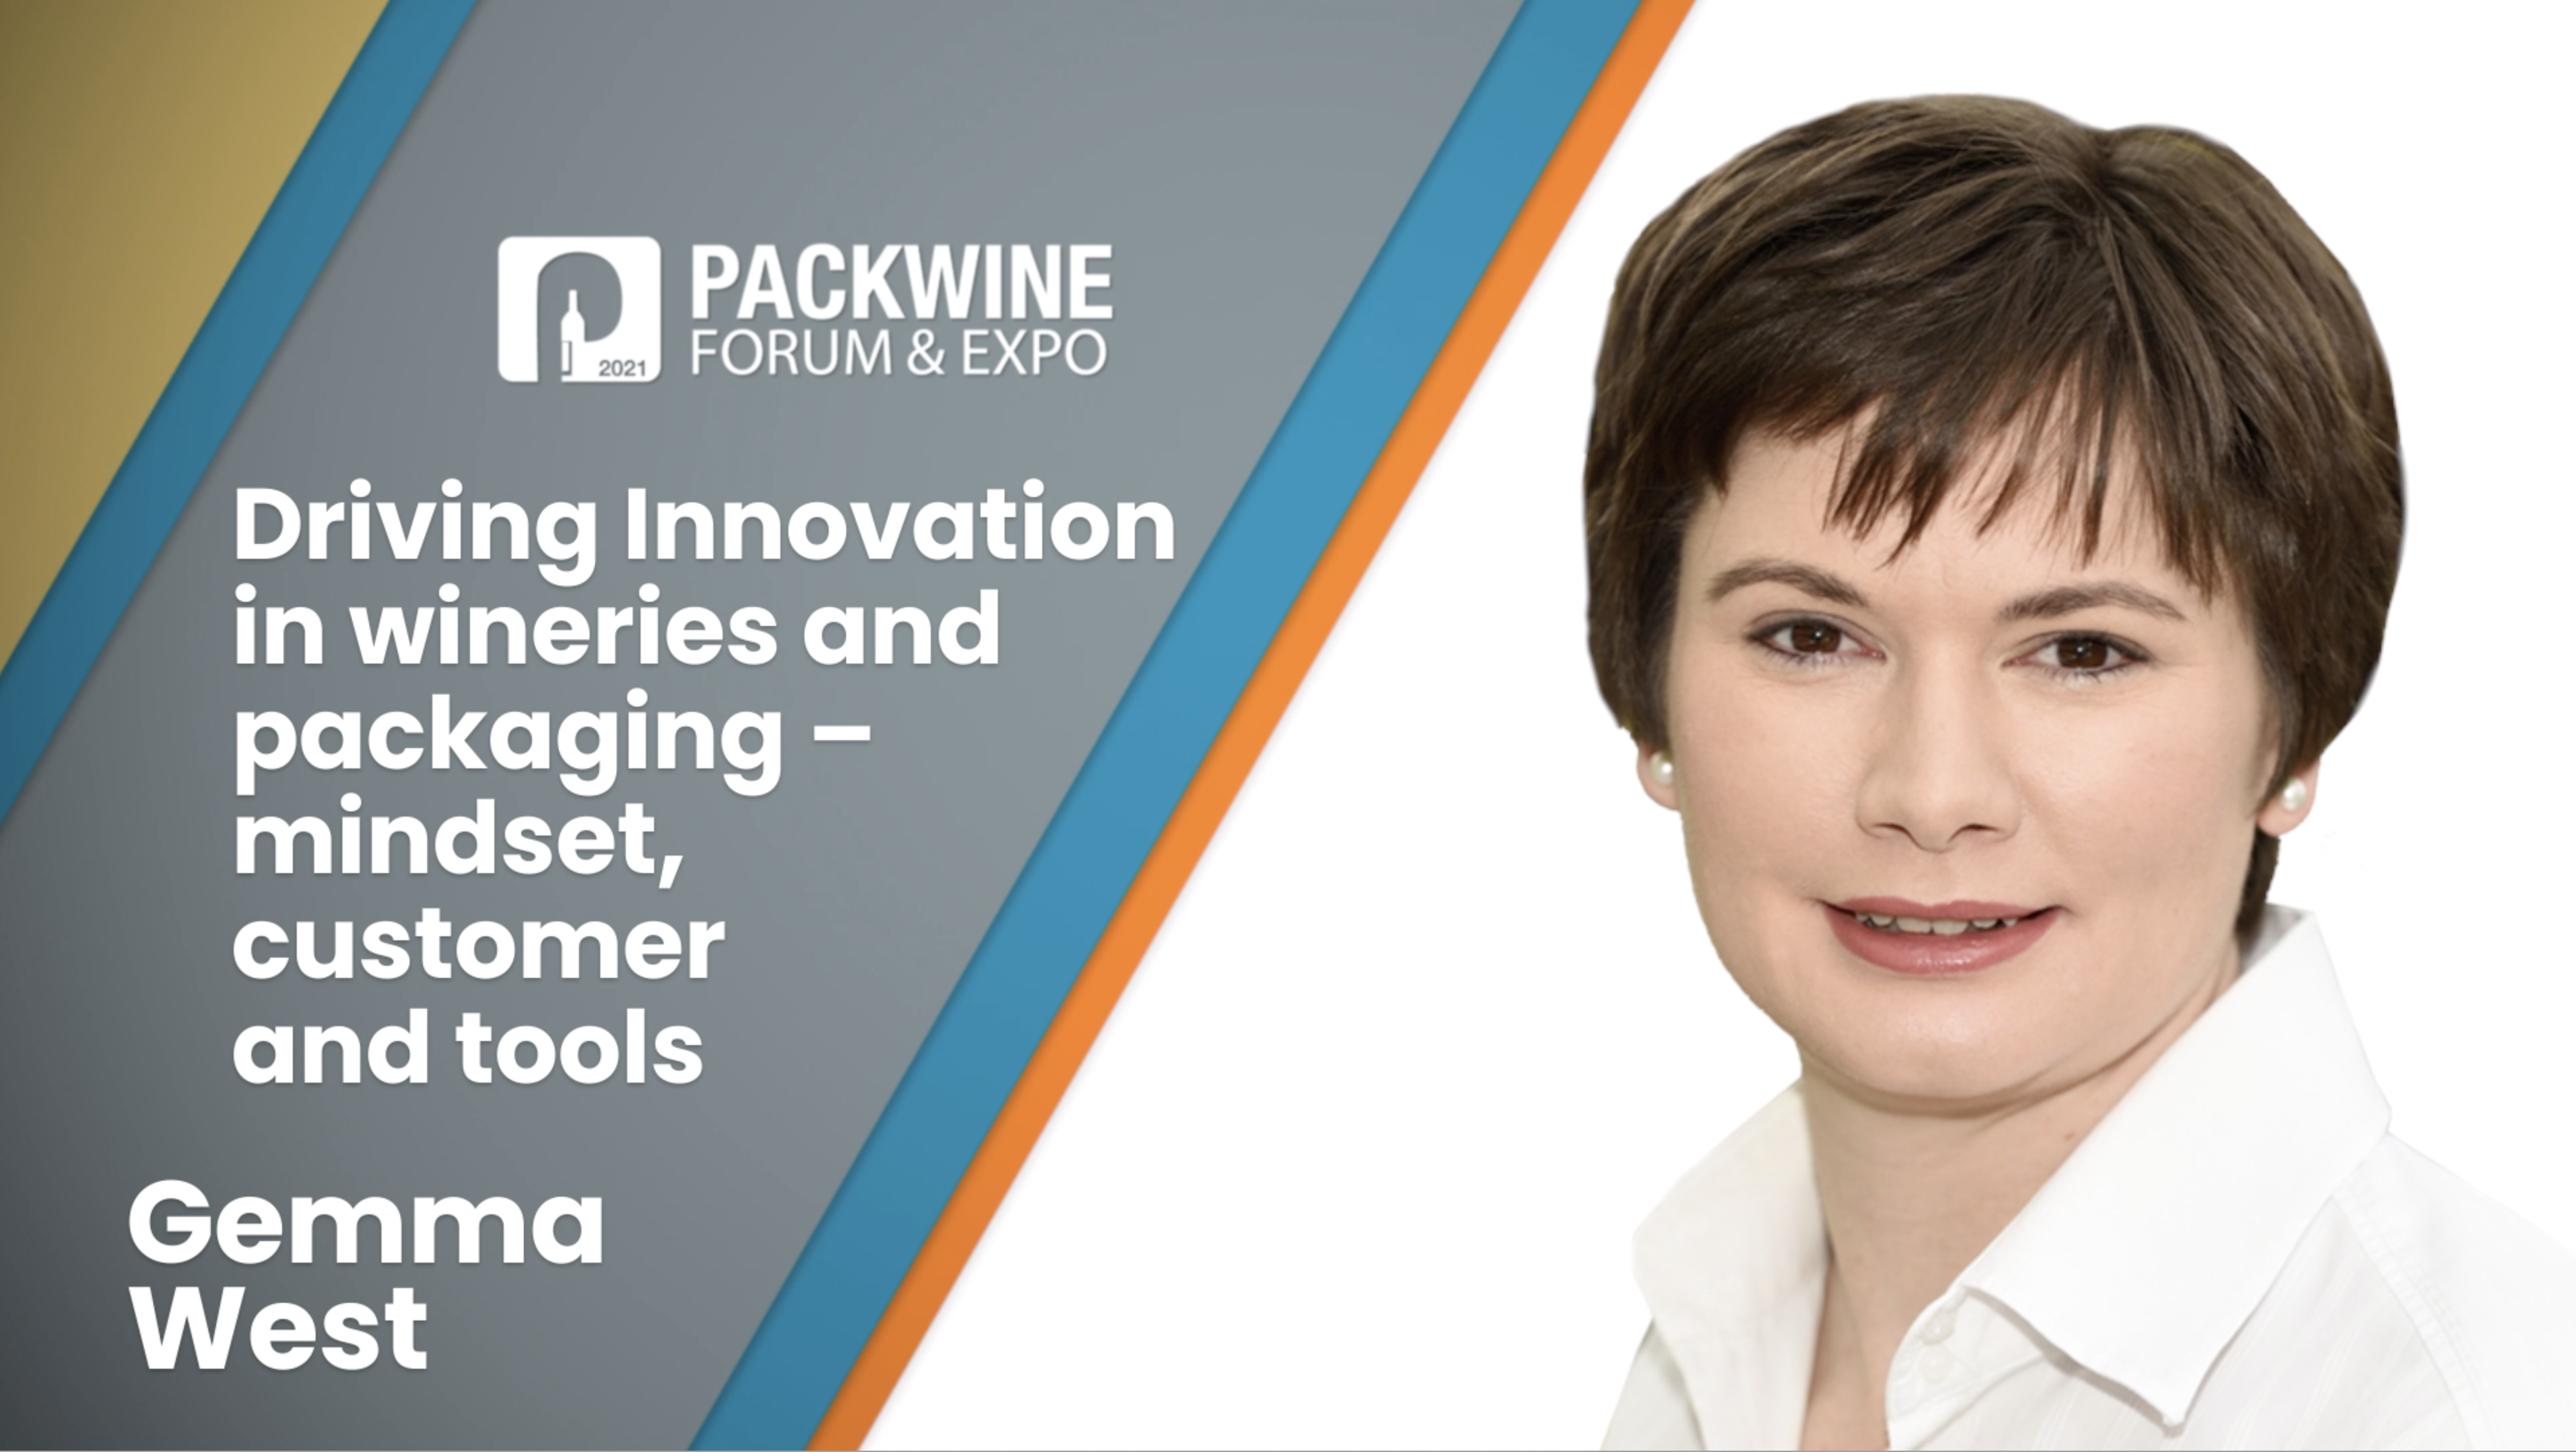 Driving Innovation in wineries and packaging – mindset, customer and tools